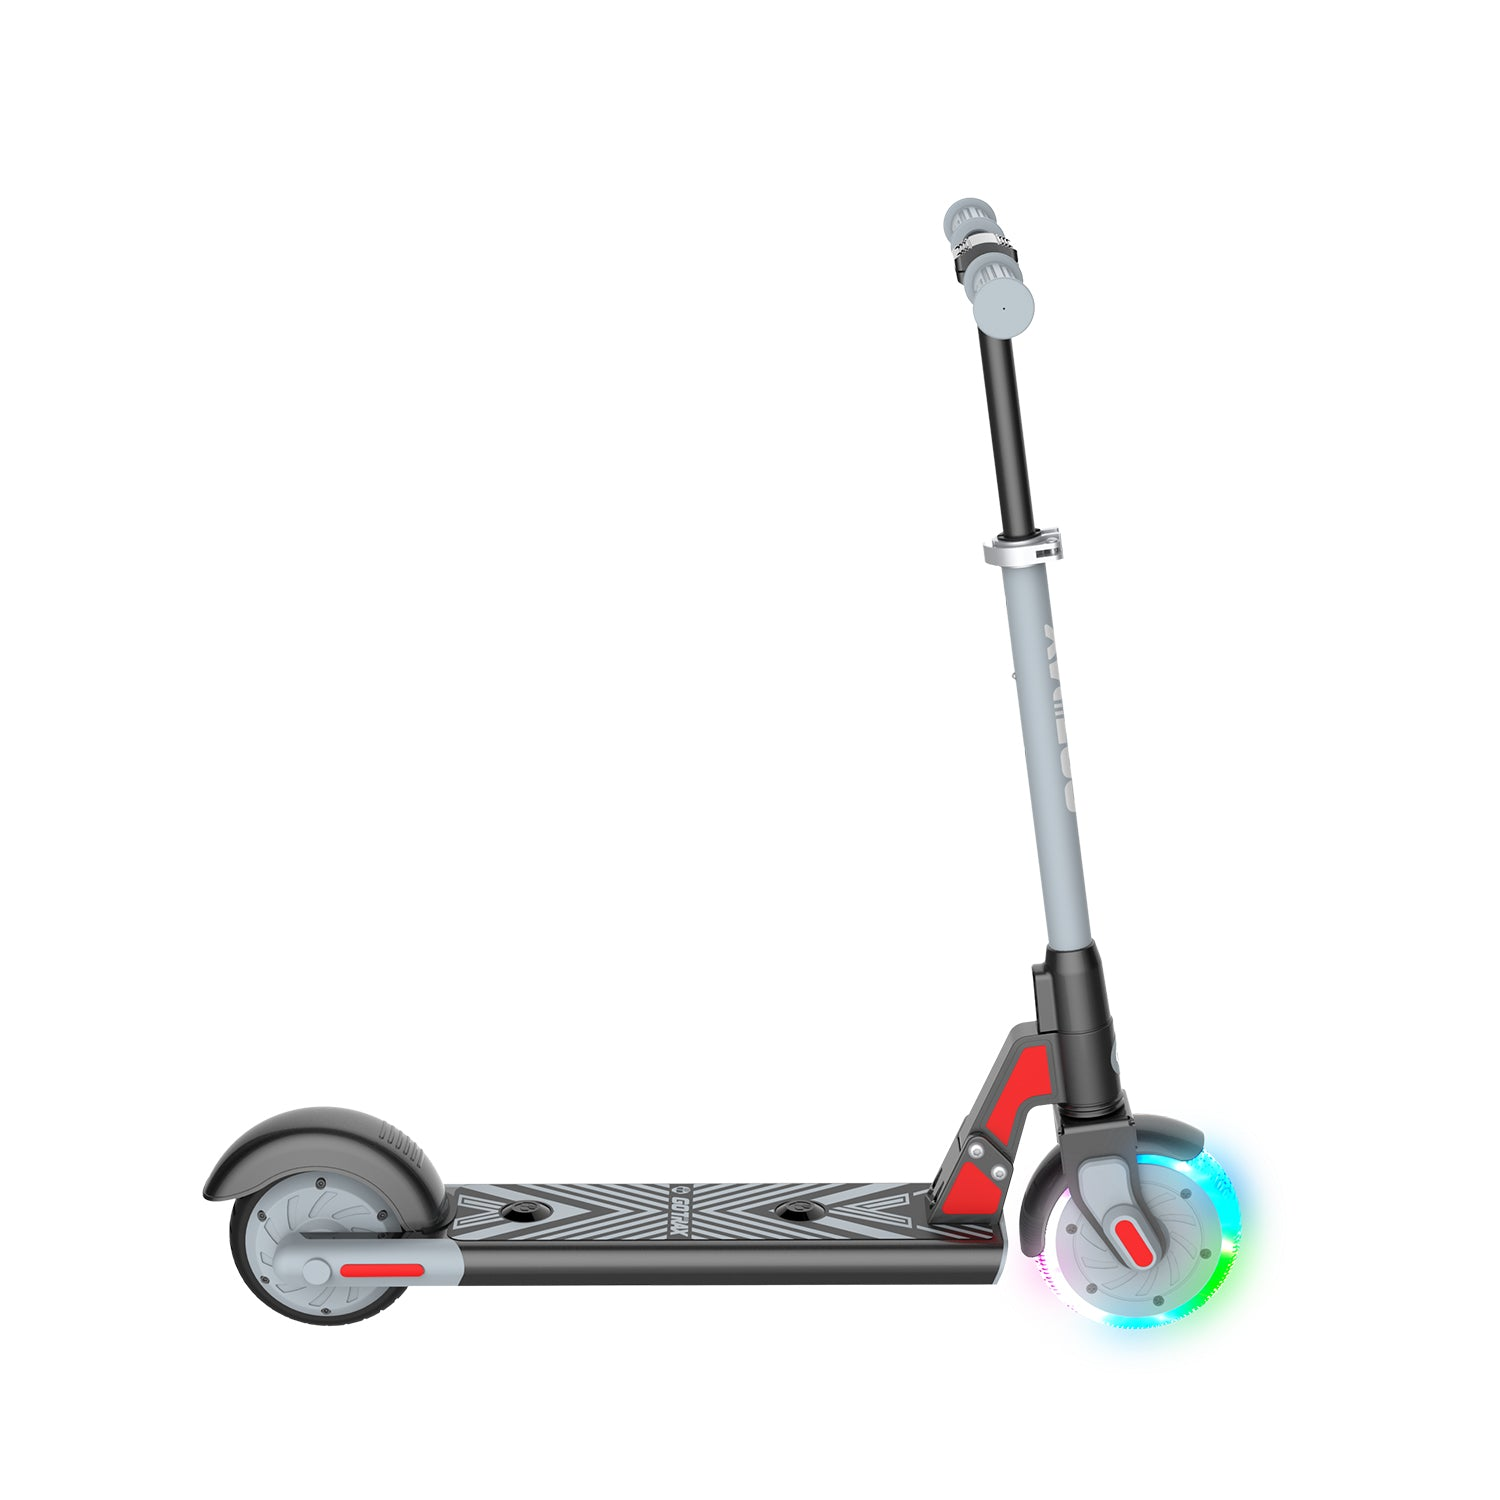 black gks lumios electric scooter for kids side image